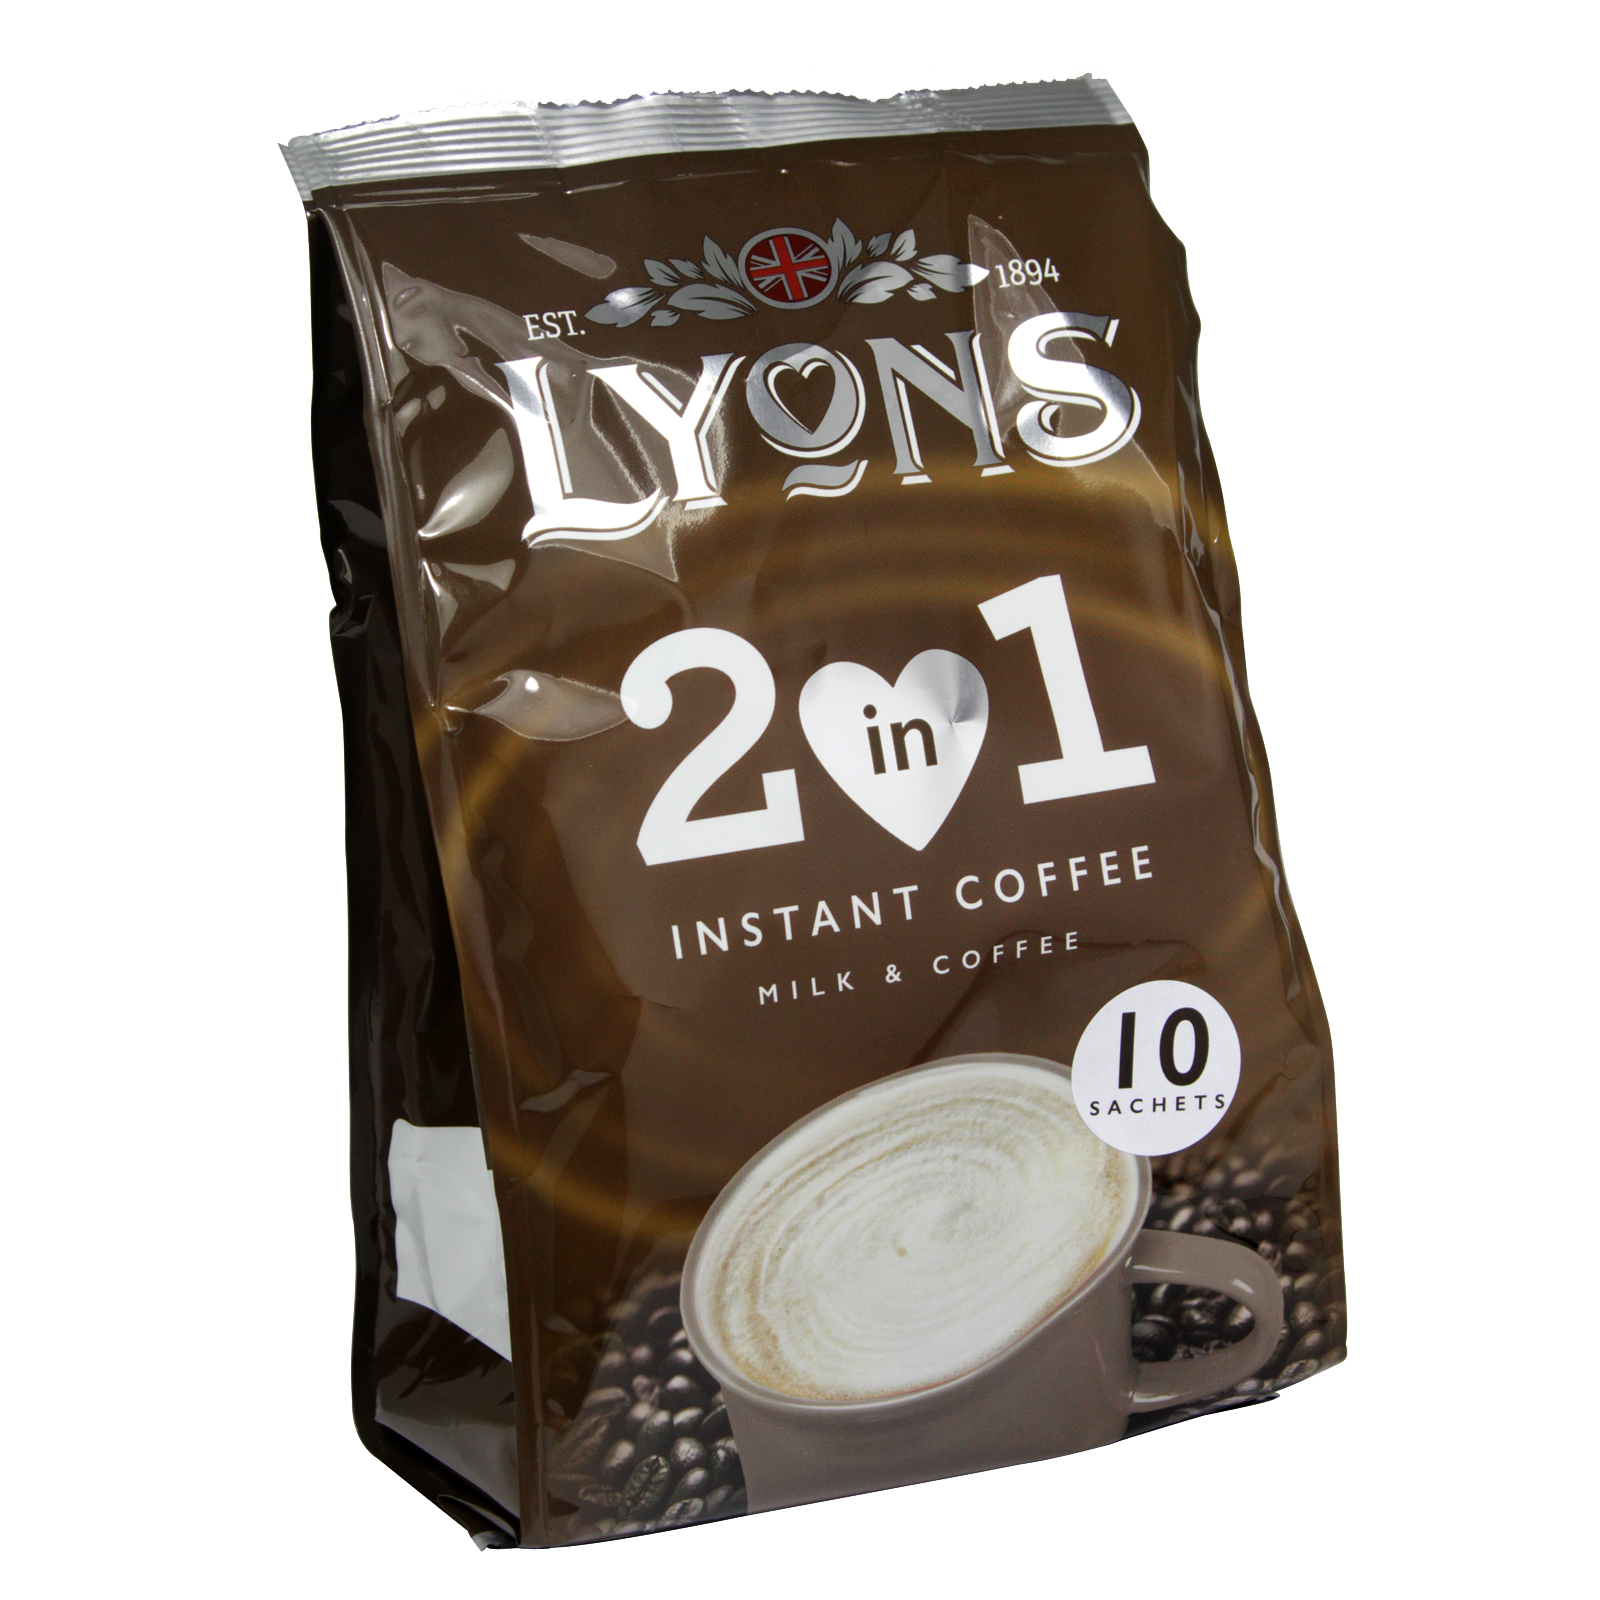 LYONS 2 IN 1 INSTANT COFFEE 10 SACHET X12